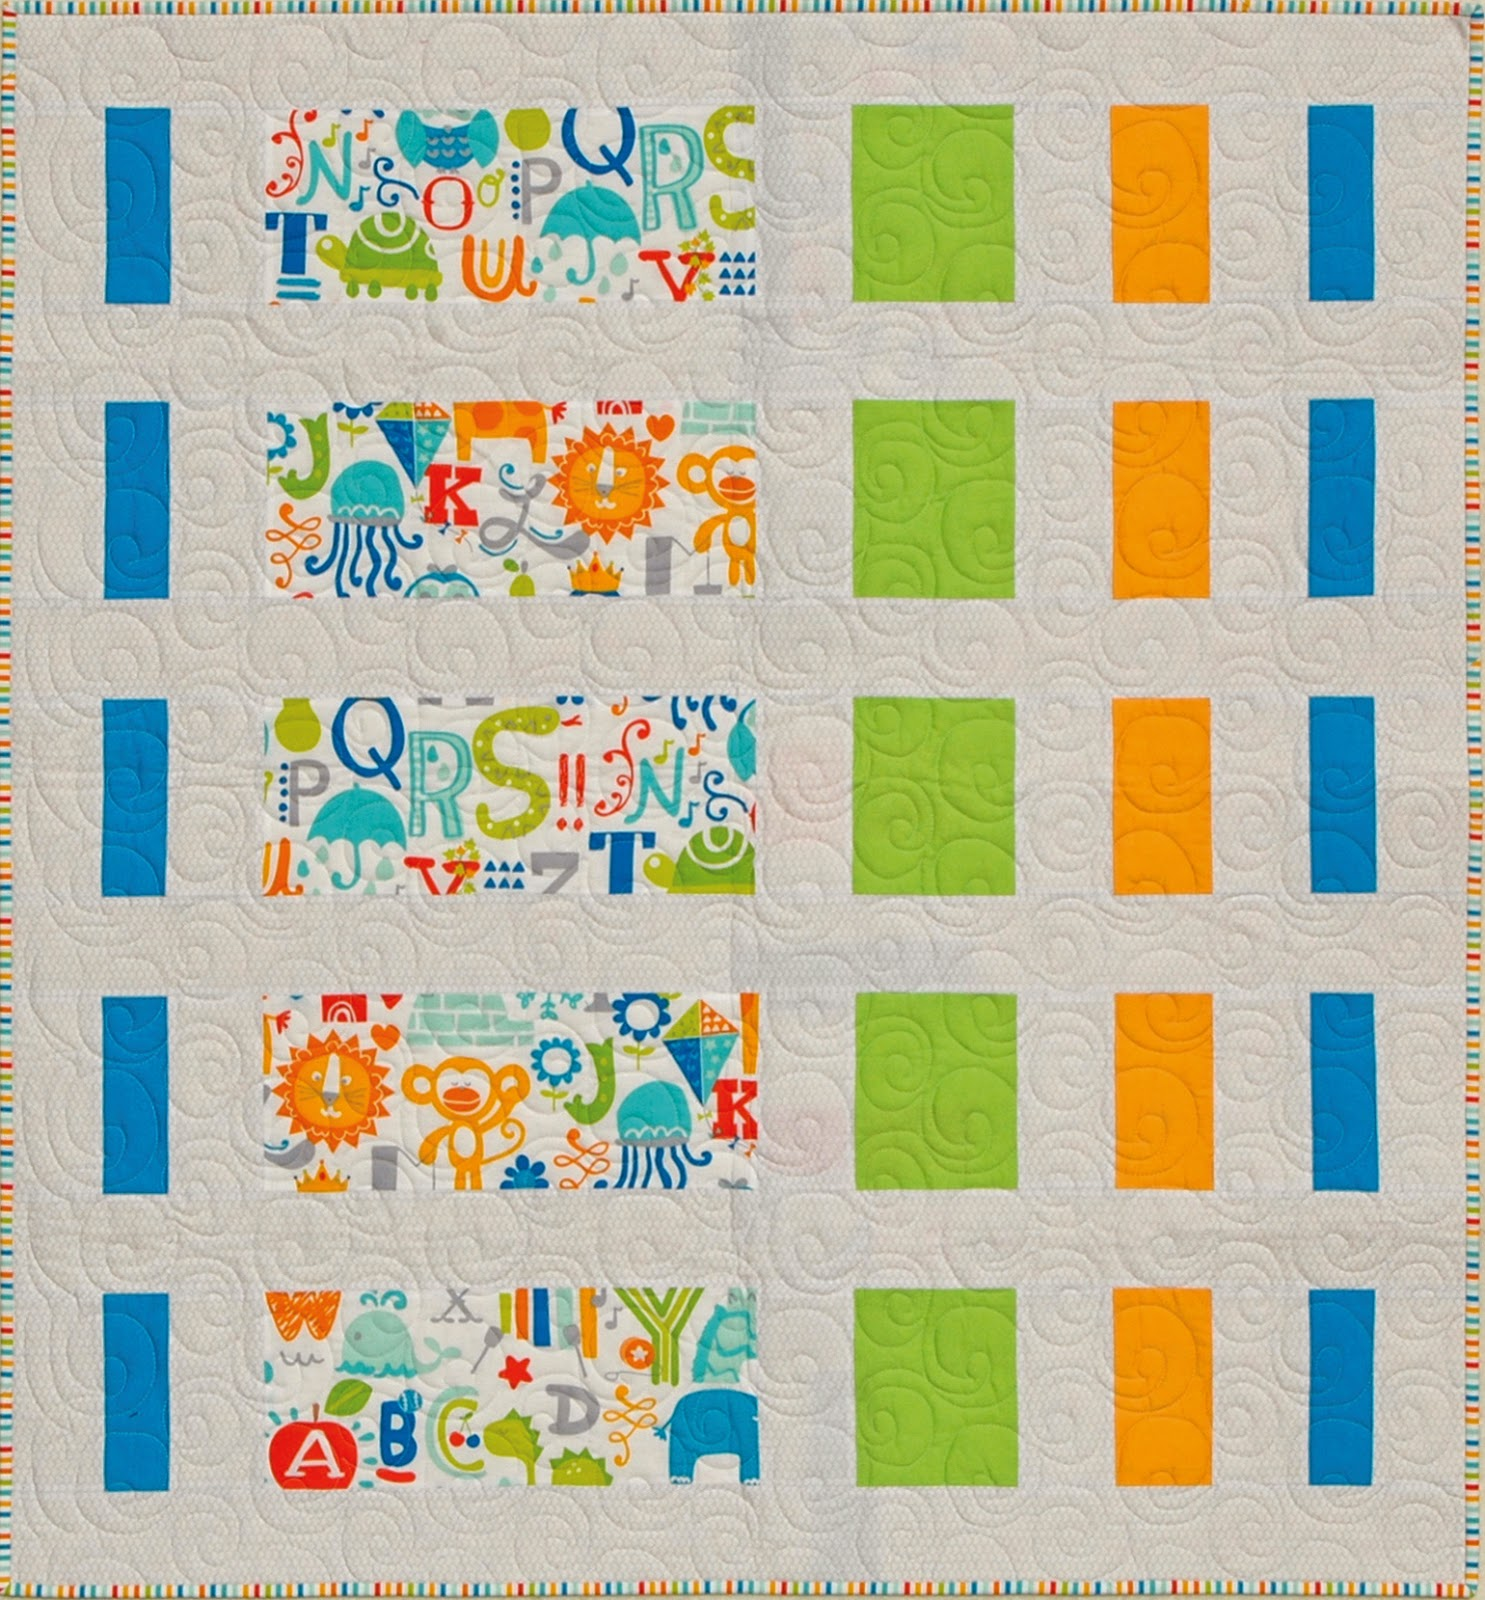 Tasty Measures, new Modern Quilt Relish pattern